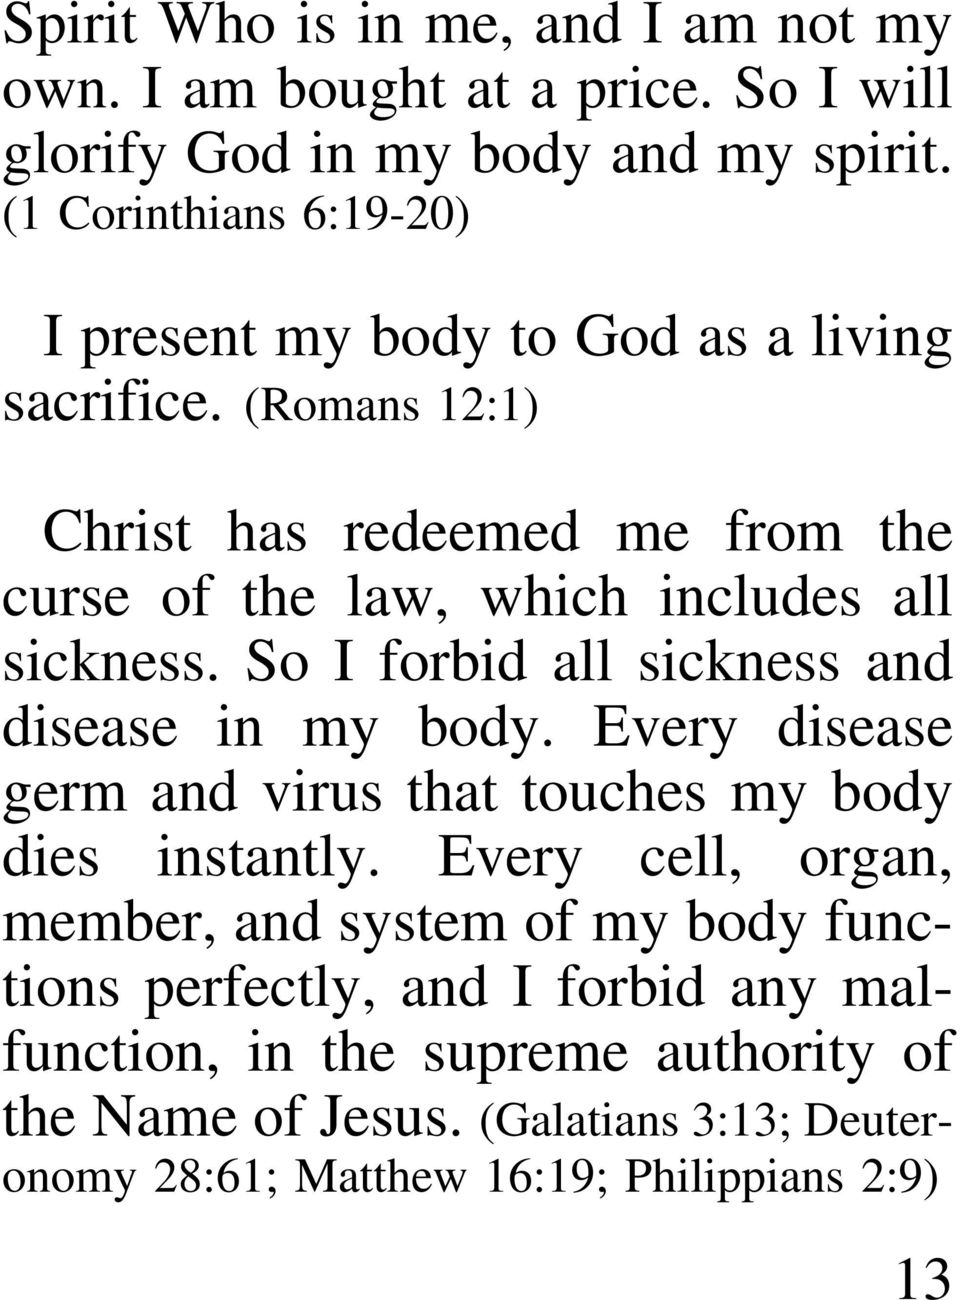 (Romans 12:1) Christ has redeemed me from the curse of the law, which includes all sickness. So I forbid all sickness and disease in my body.